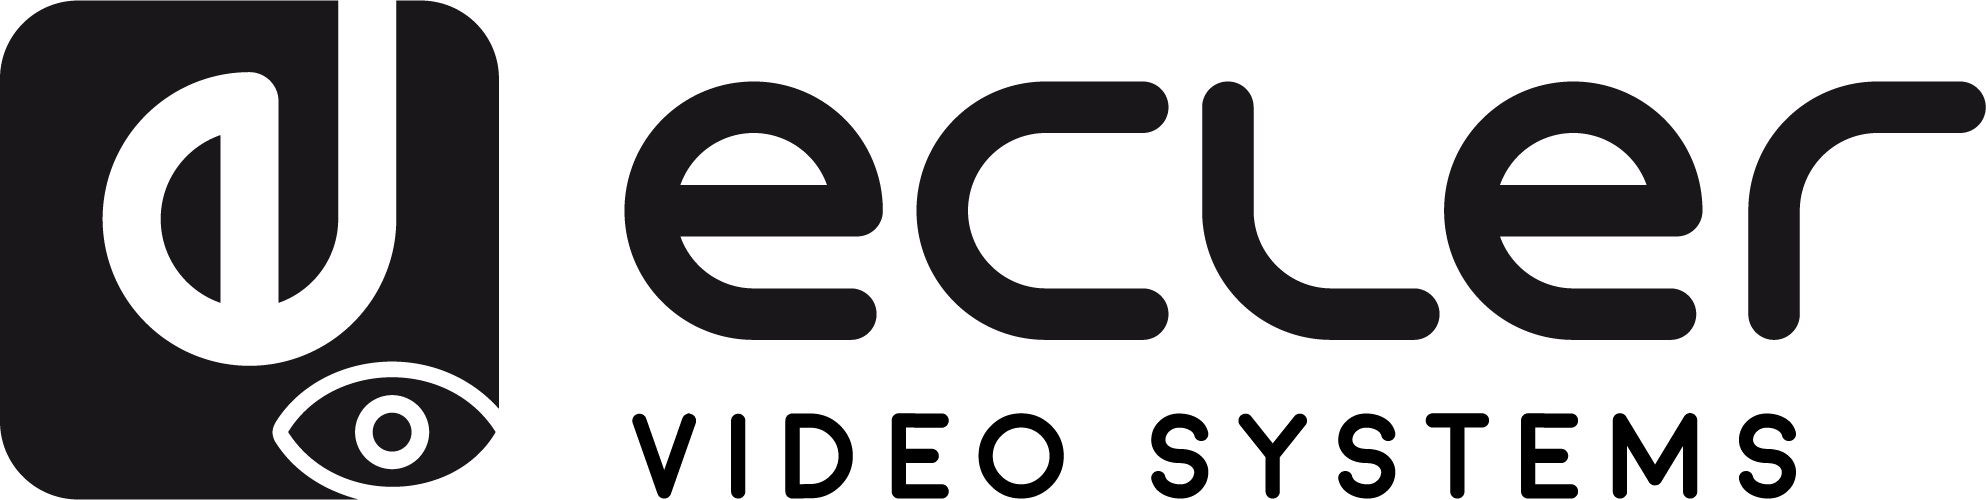 LOGO ECLER VIDEO SYSTEMS